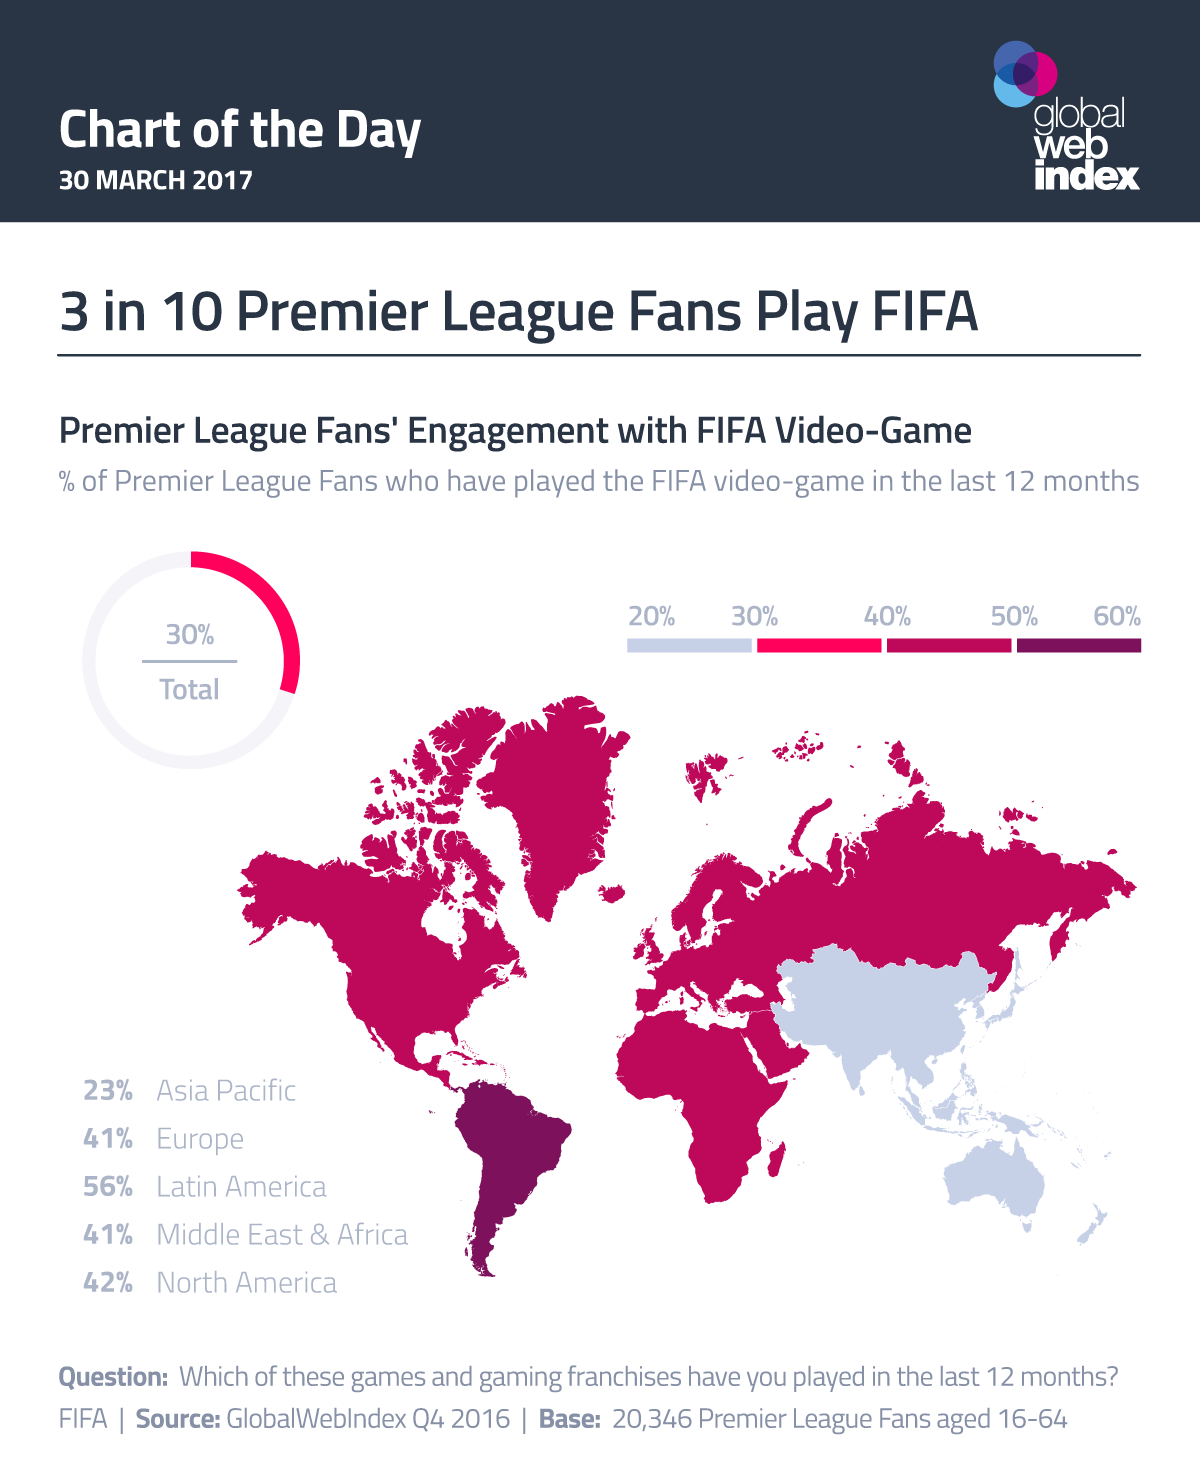 3 in 10 Premier League Fans Play FIFA